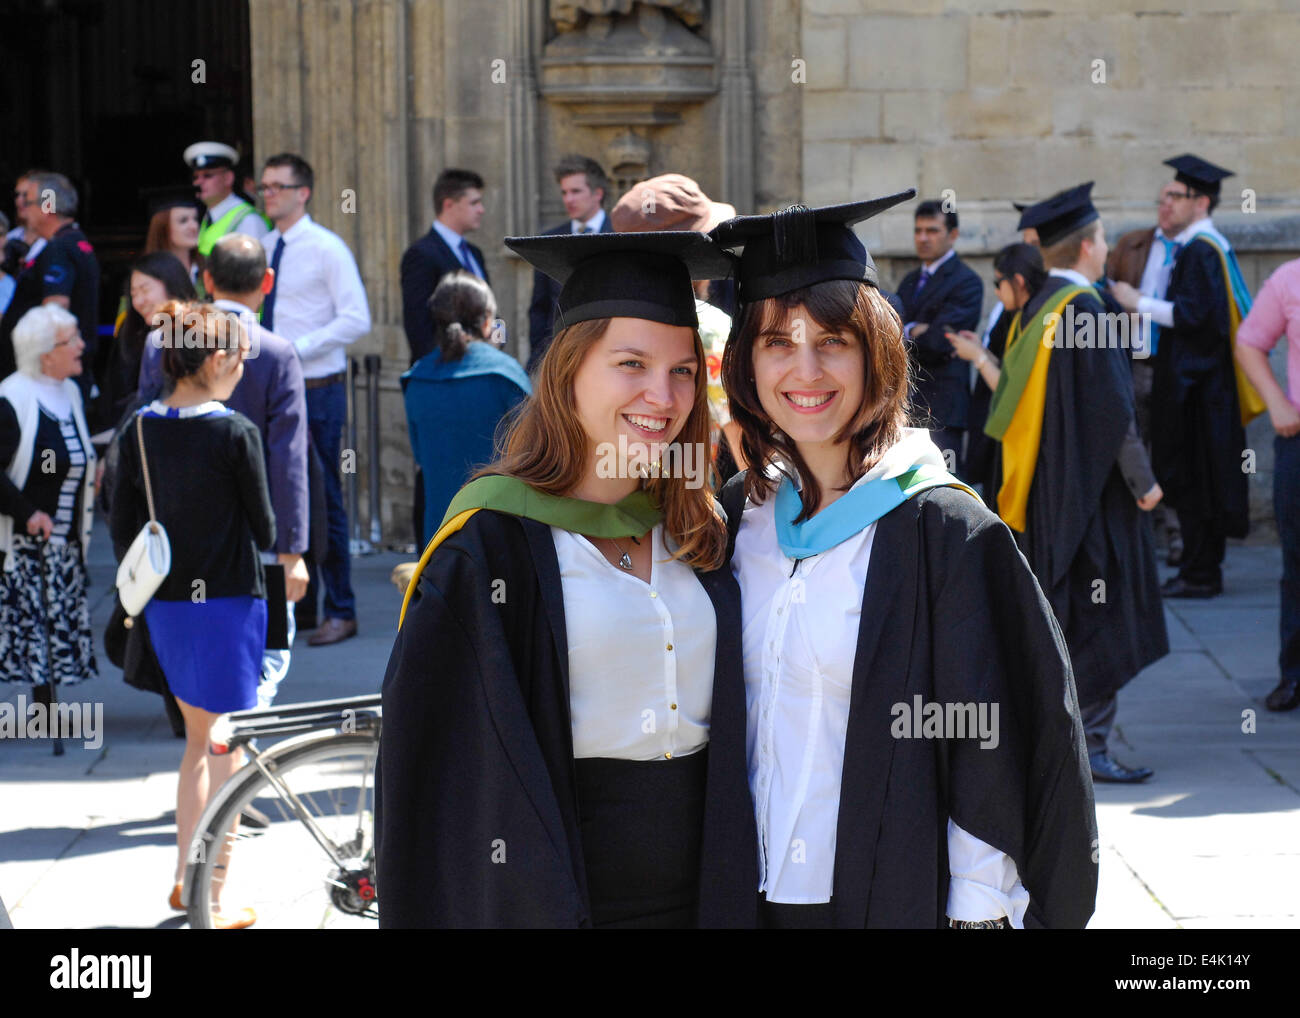 To acquire University bristol graduation what to wear pictures trends